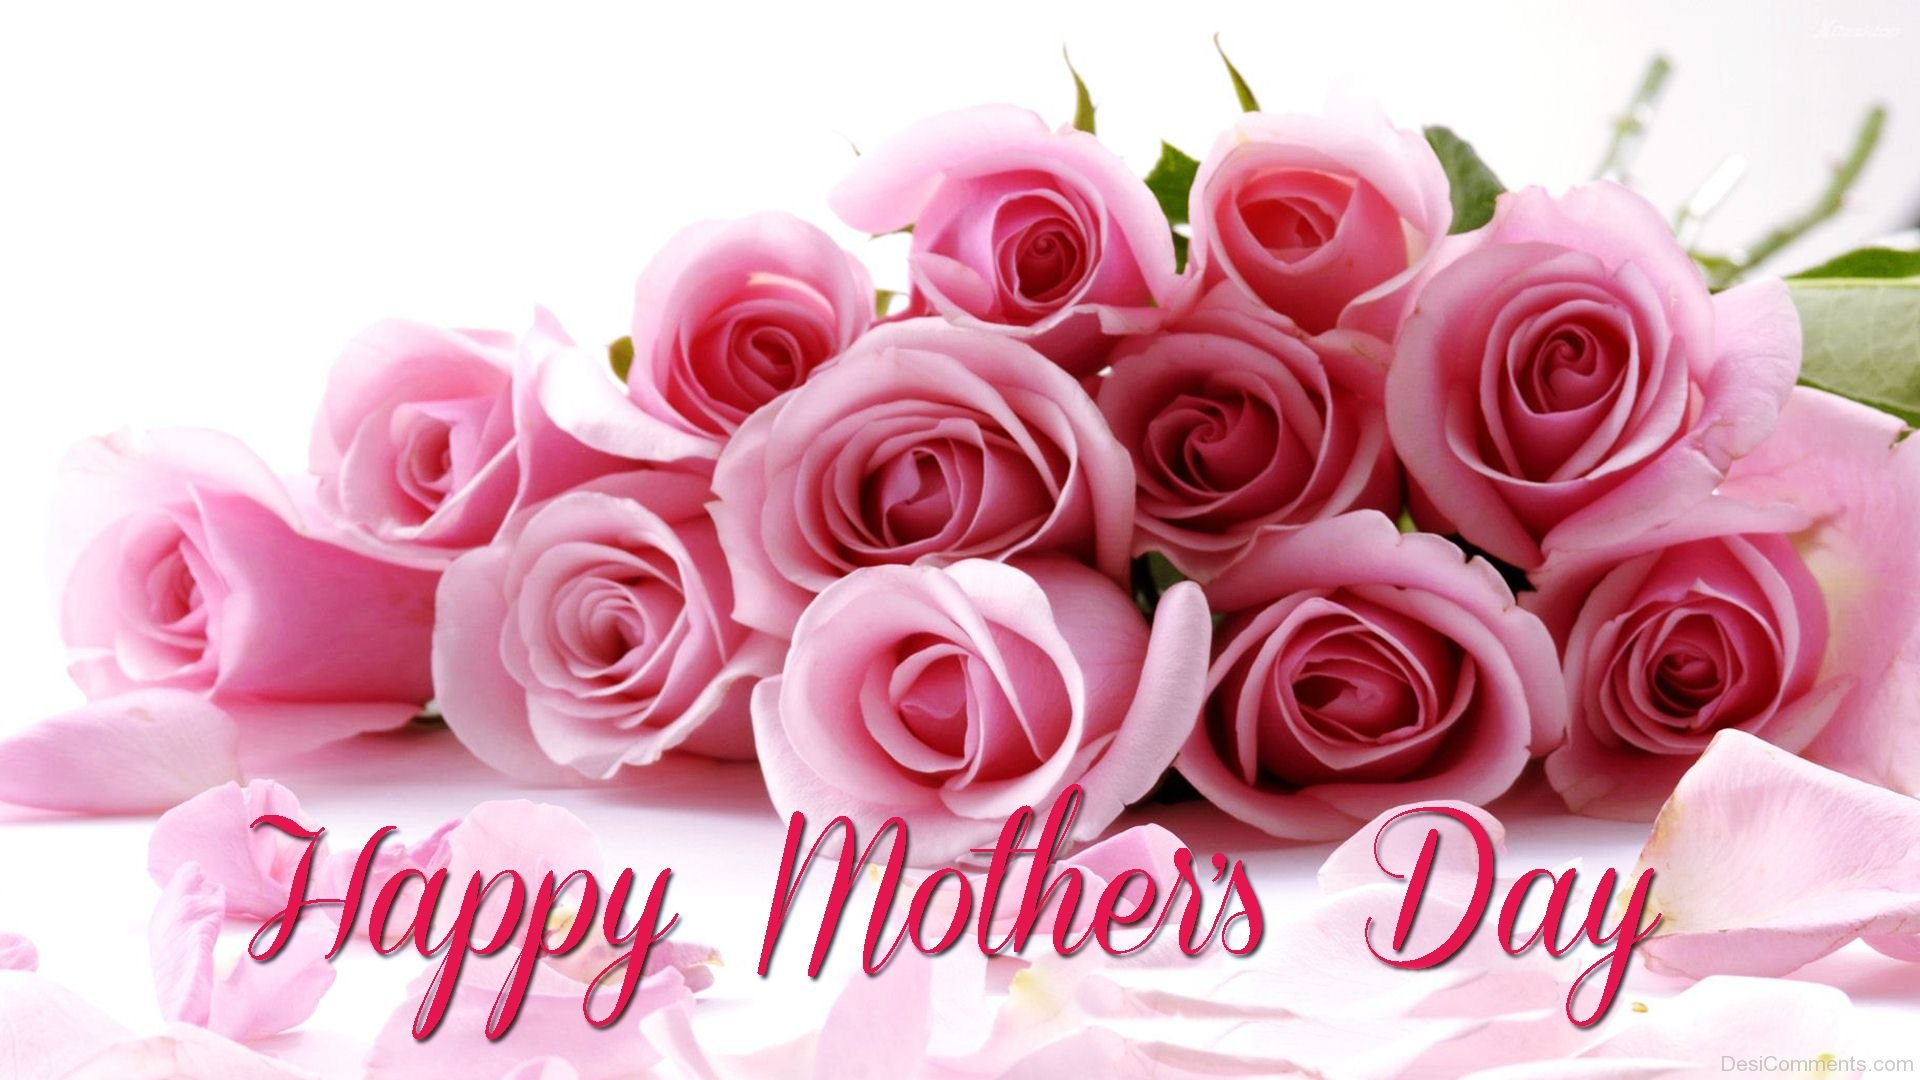 Happy-Mothers-Day-Image-1.jpg